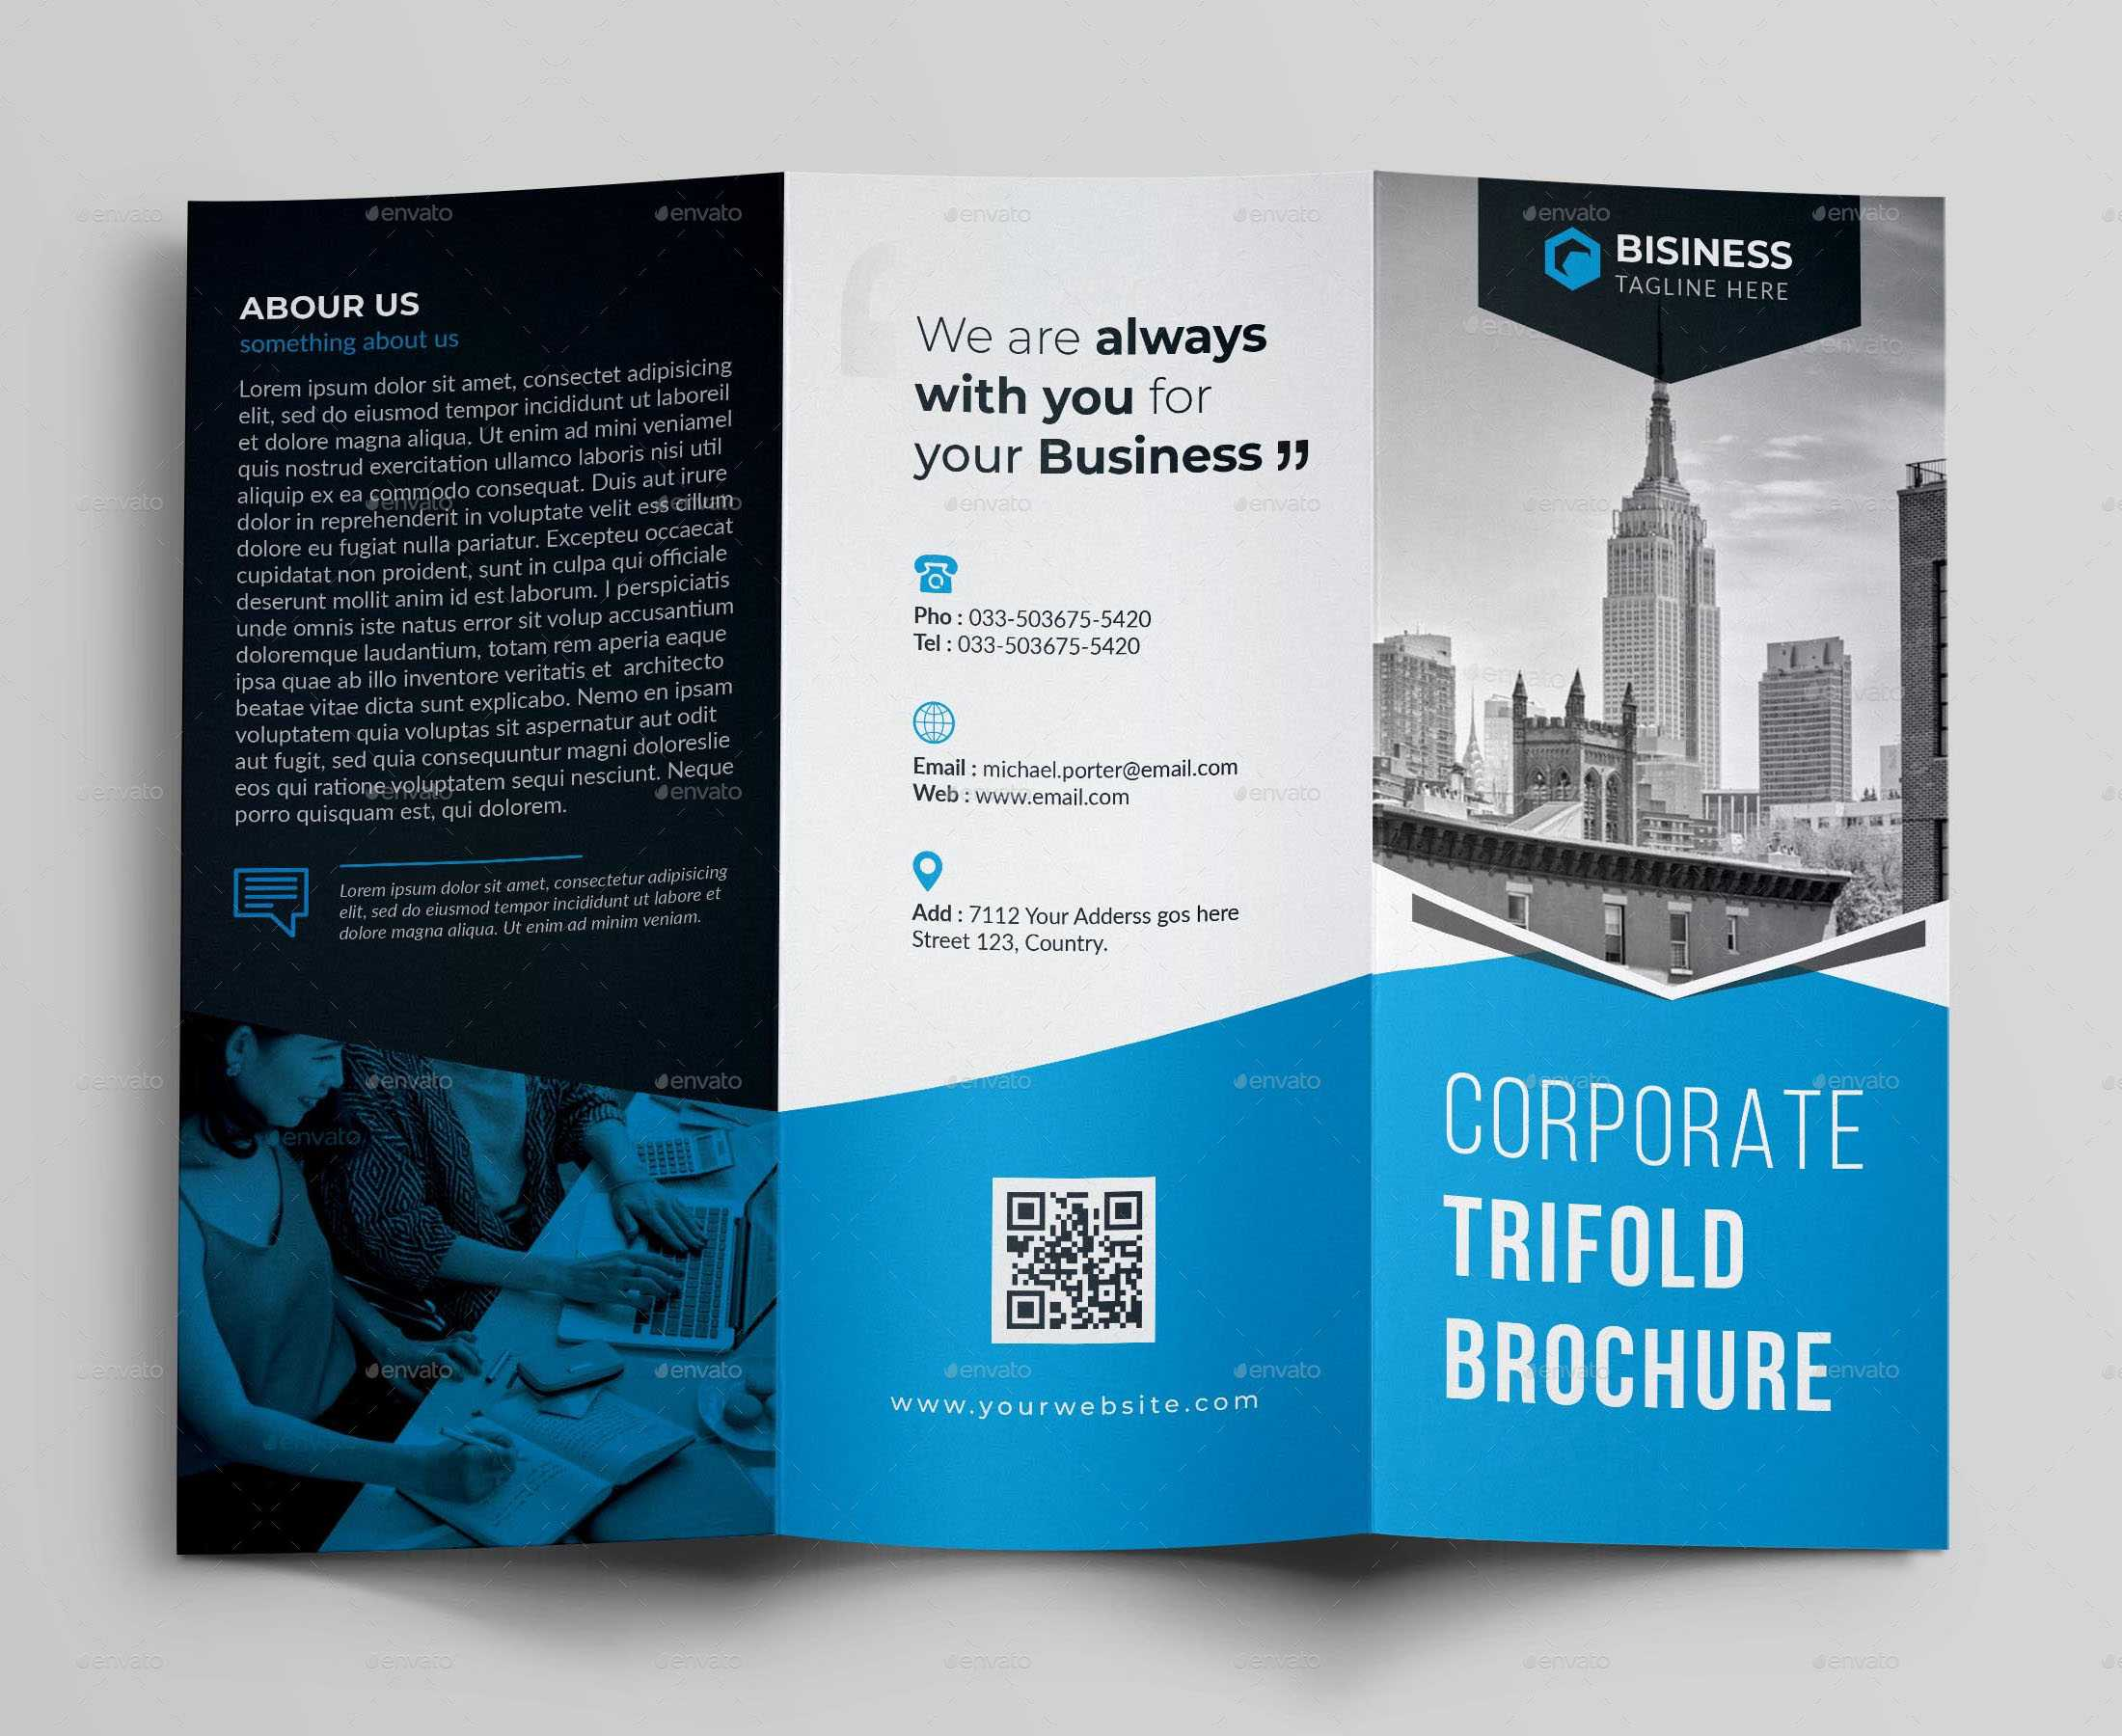 017 Template Ideas Corporate Brochure Templates Psd Free Pertaining To Architecture Brochure Templates Free Download